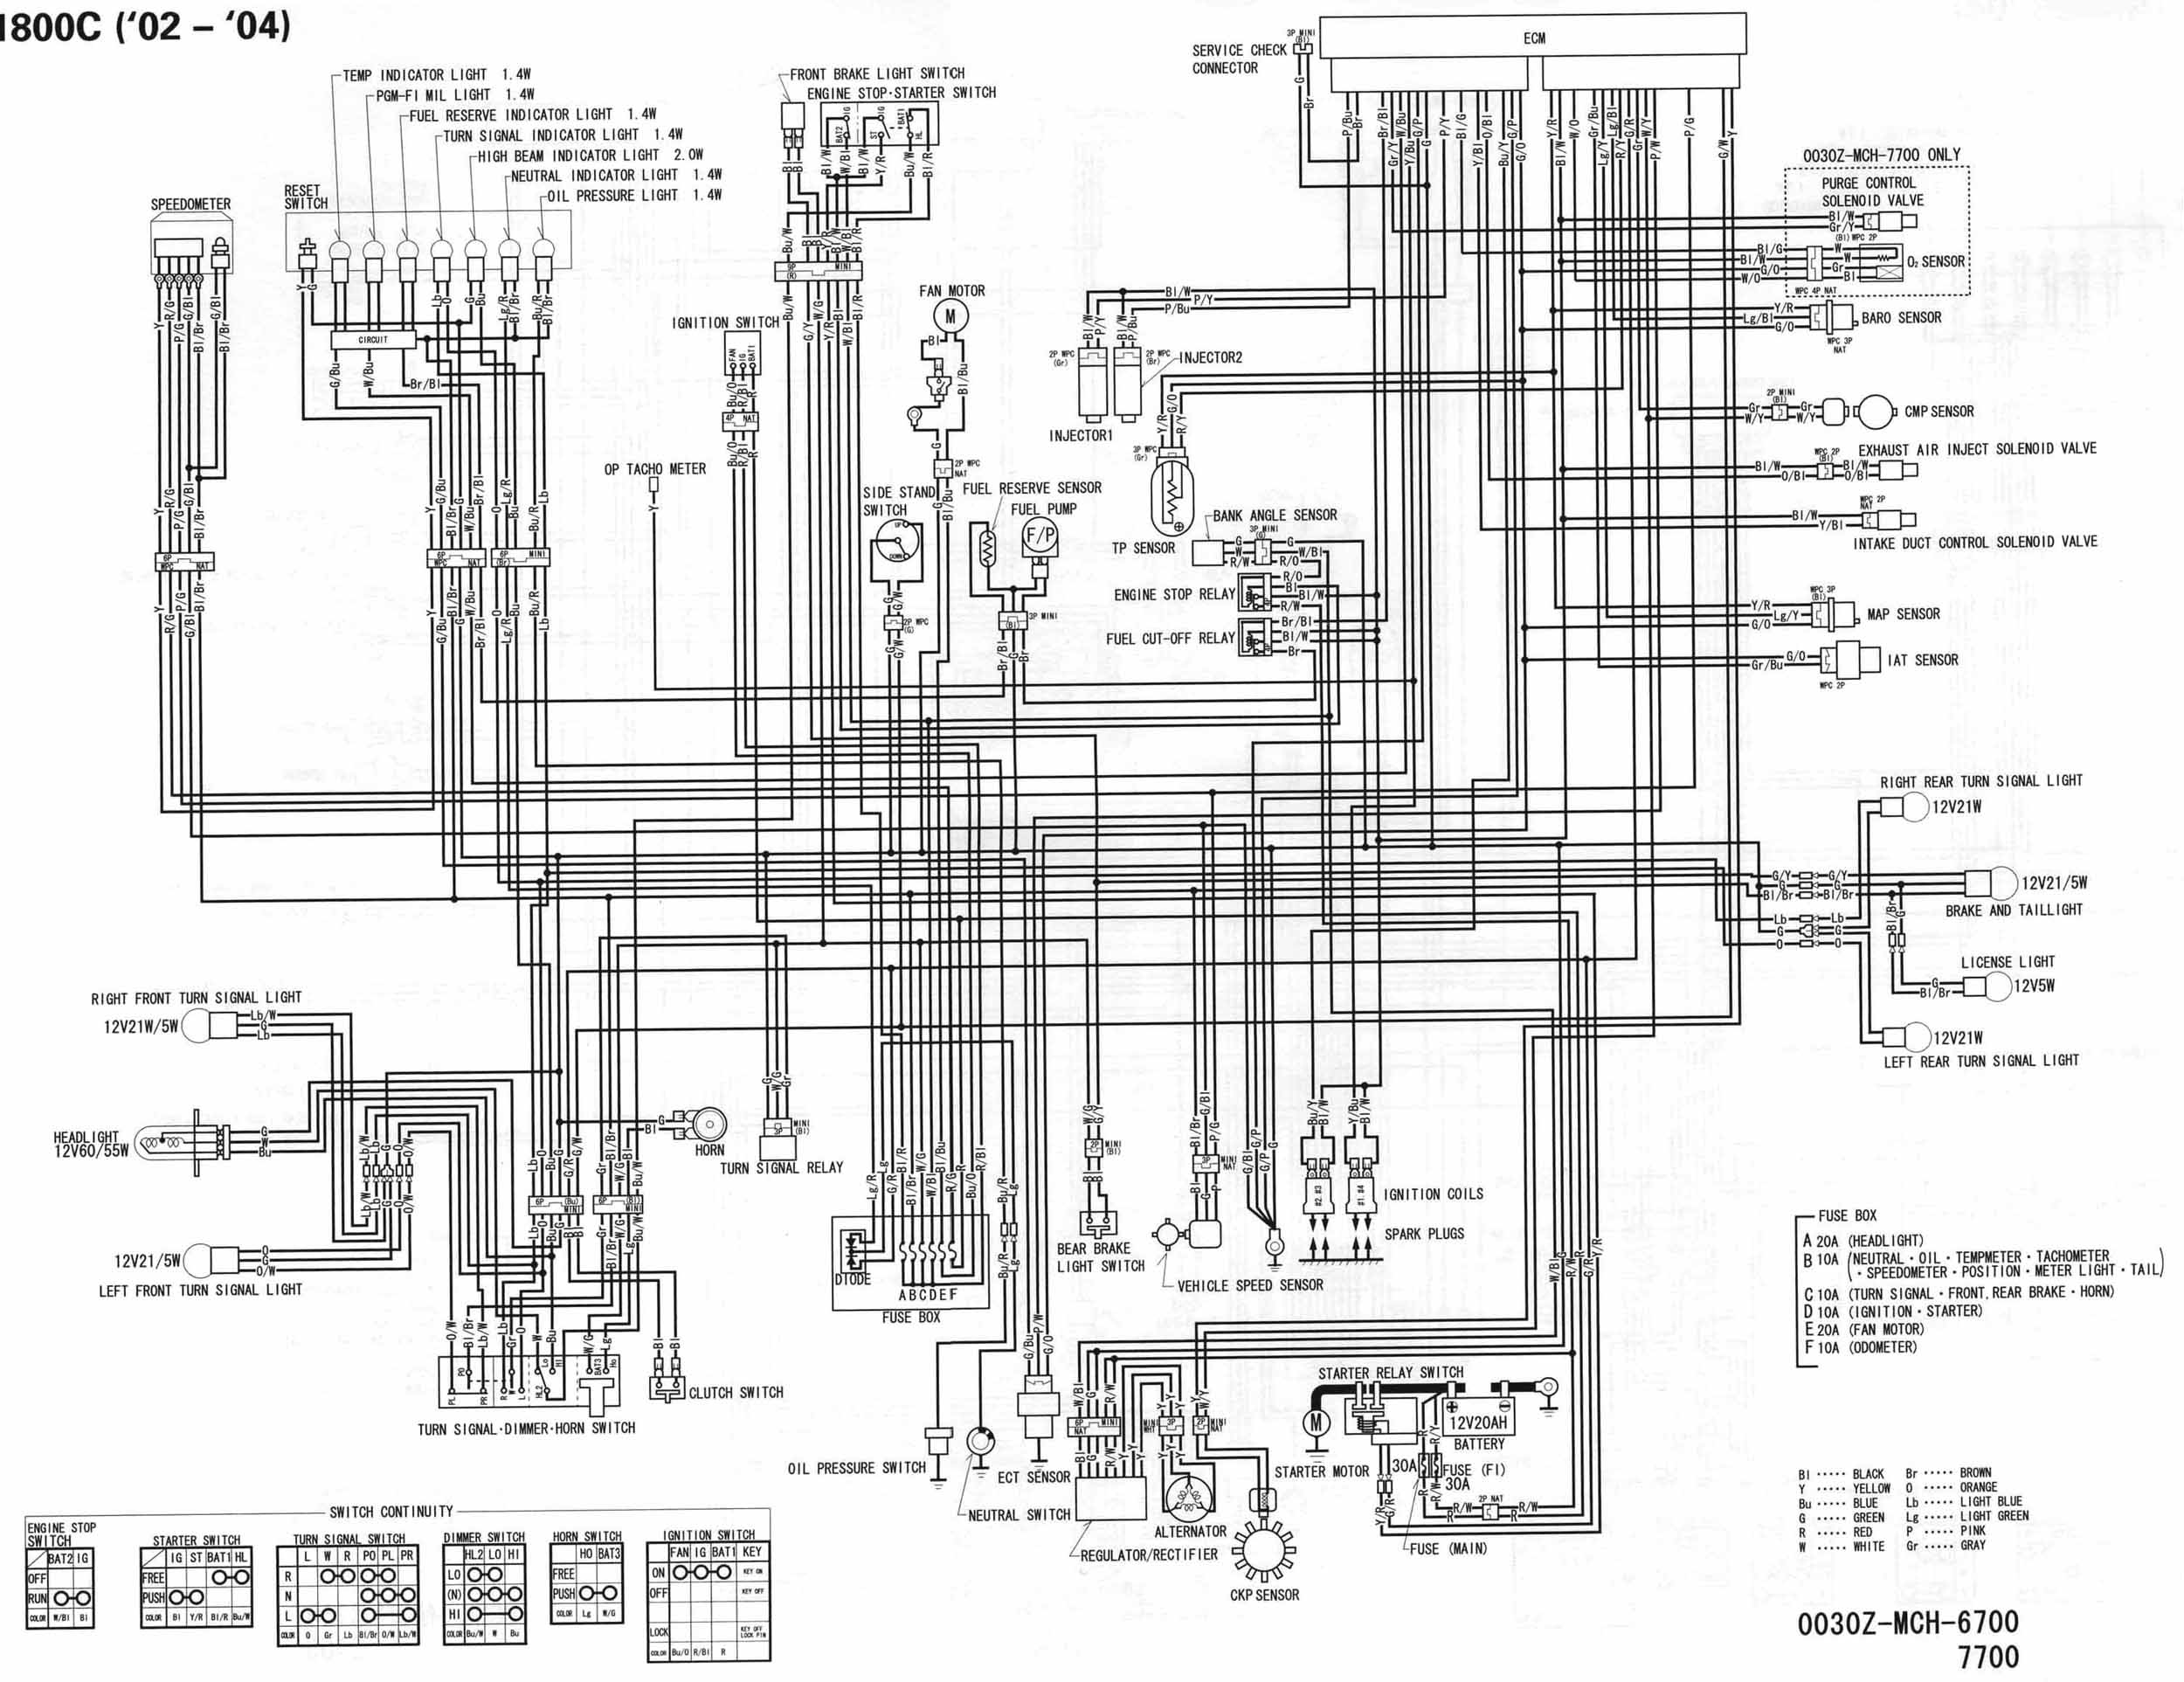 Enjoyable Flagstaff Wiring Diagram Wiring Library Wiring Digital Resources Millslowmaporg